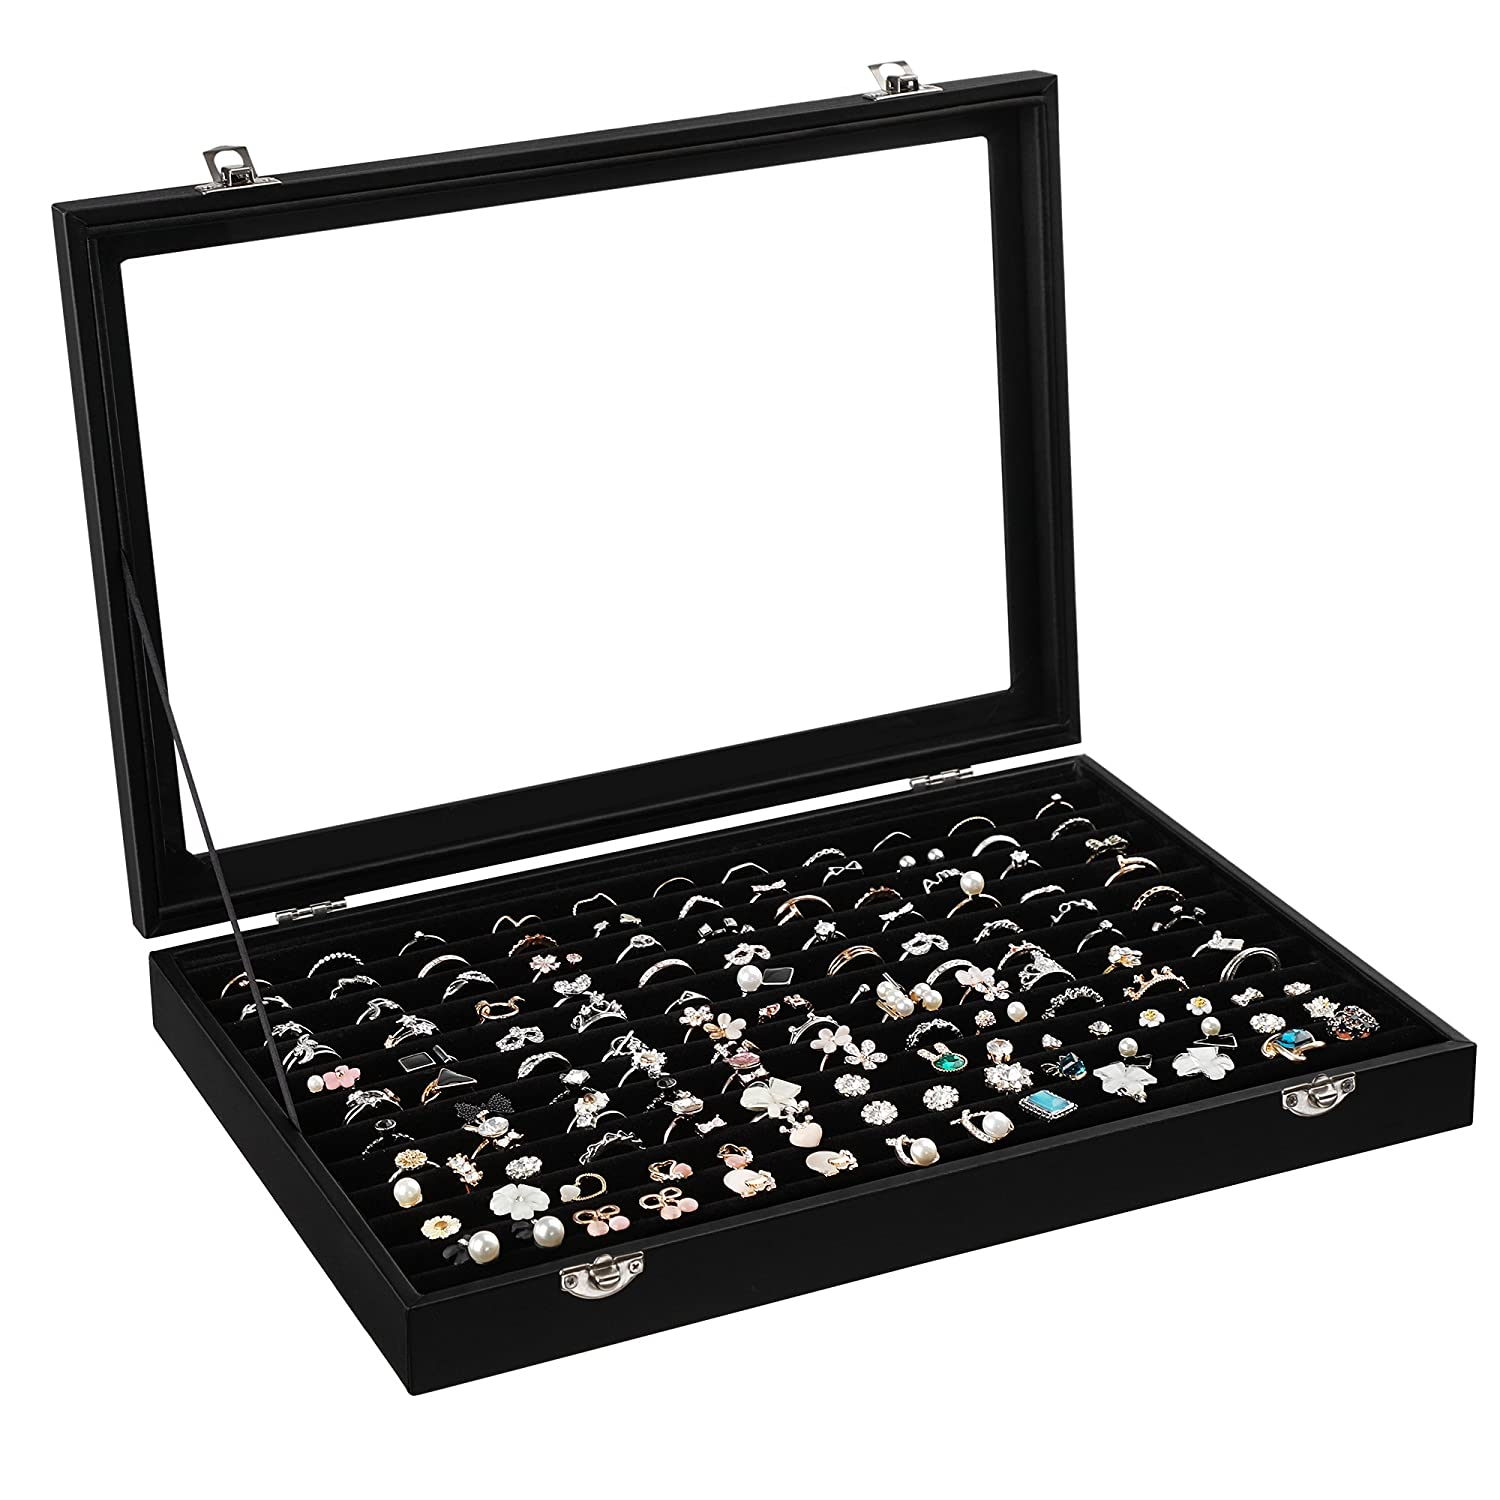 SONGMICS Jewellery Display Box for 100 Rings JDS301